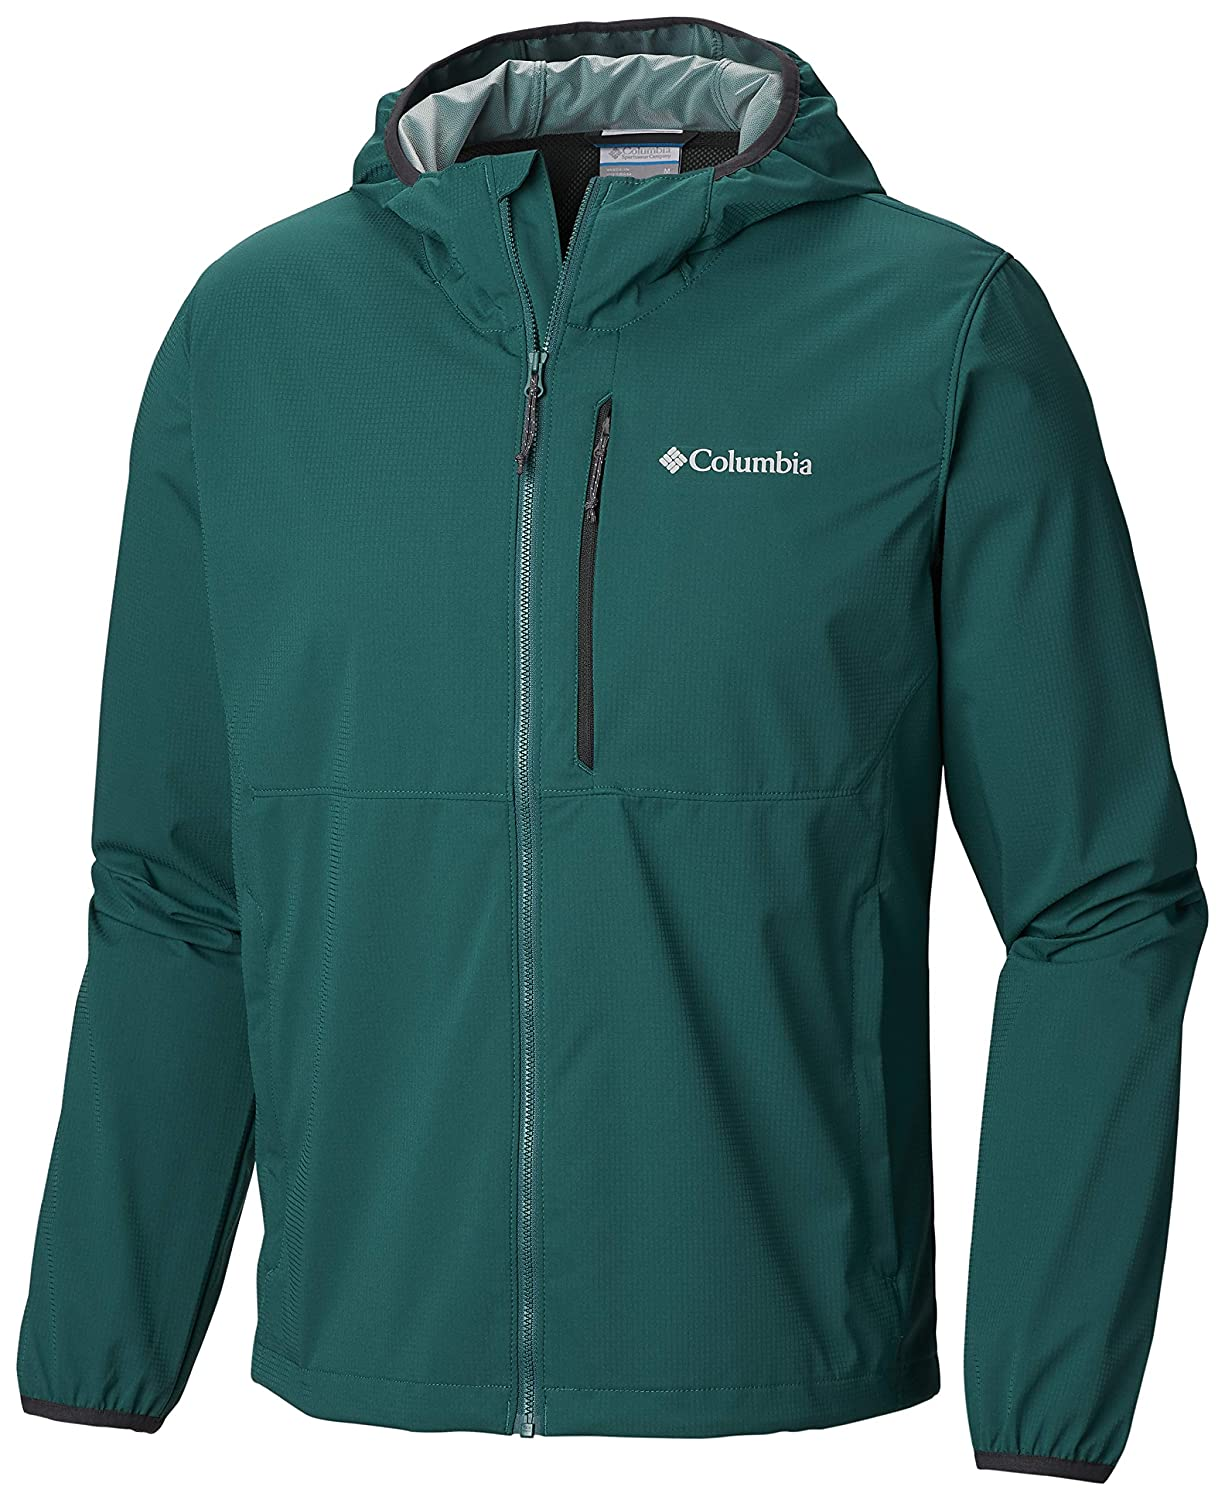 Pine Green L Columbia Men's Mystic Trail Athletic-Shell-Jackets